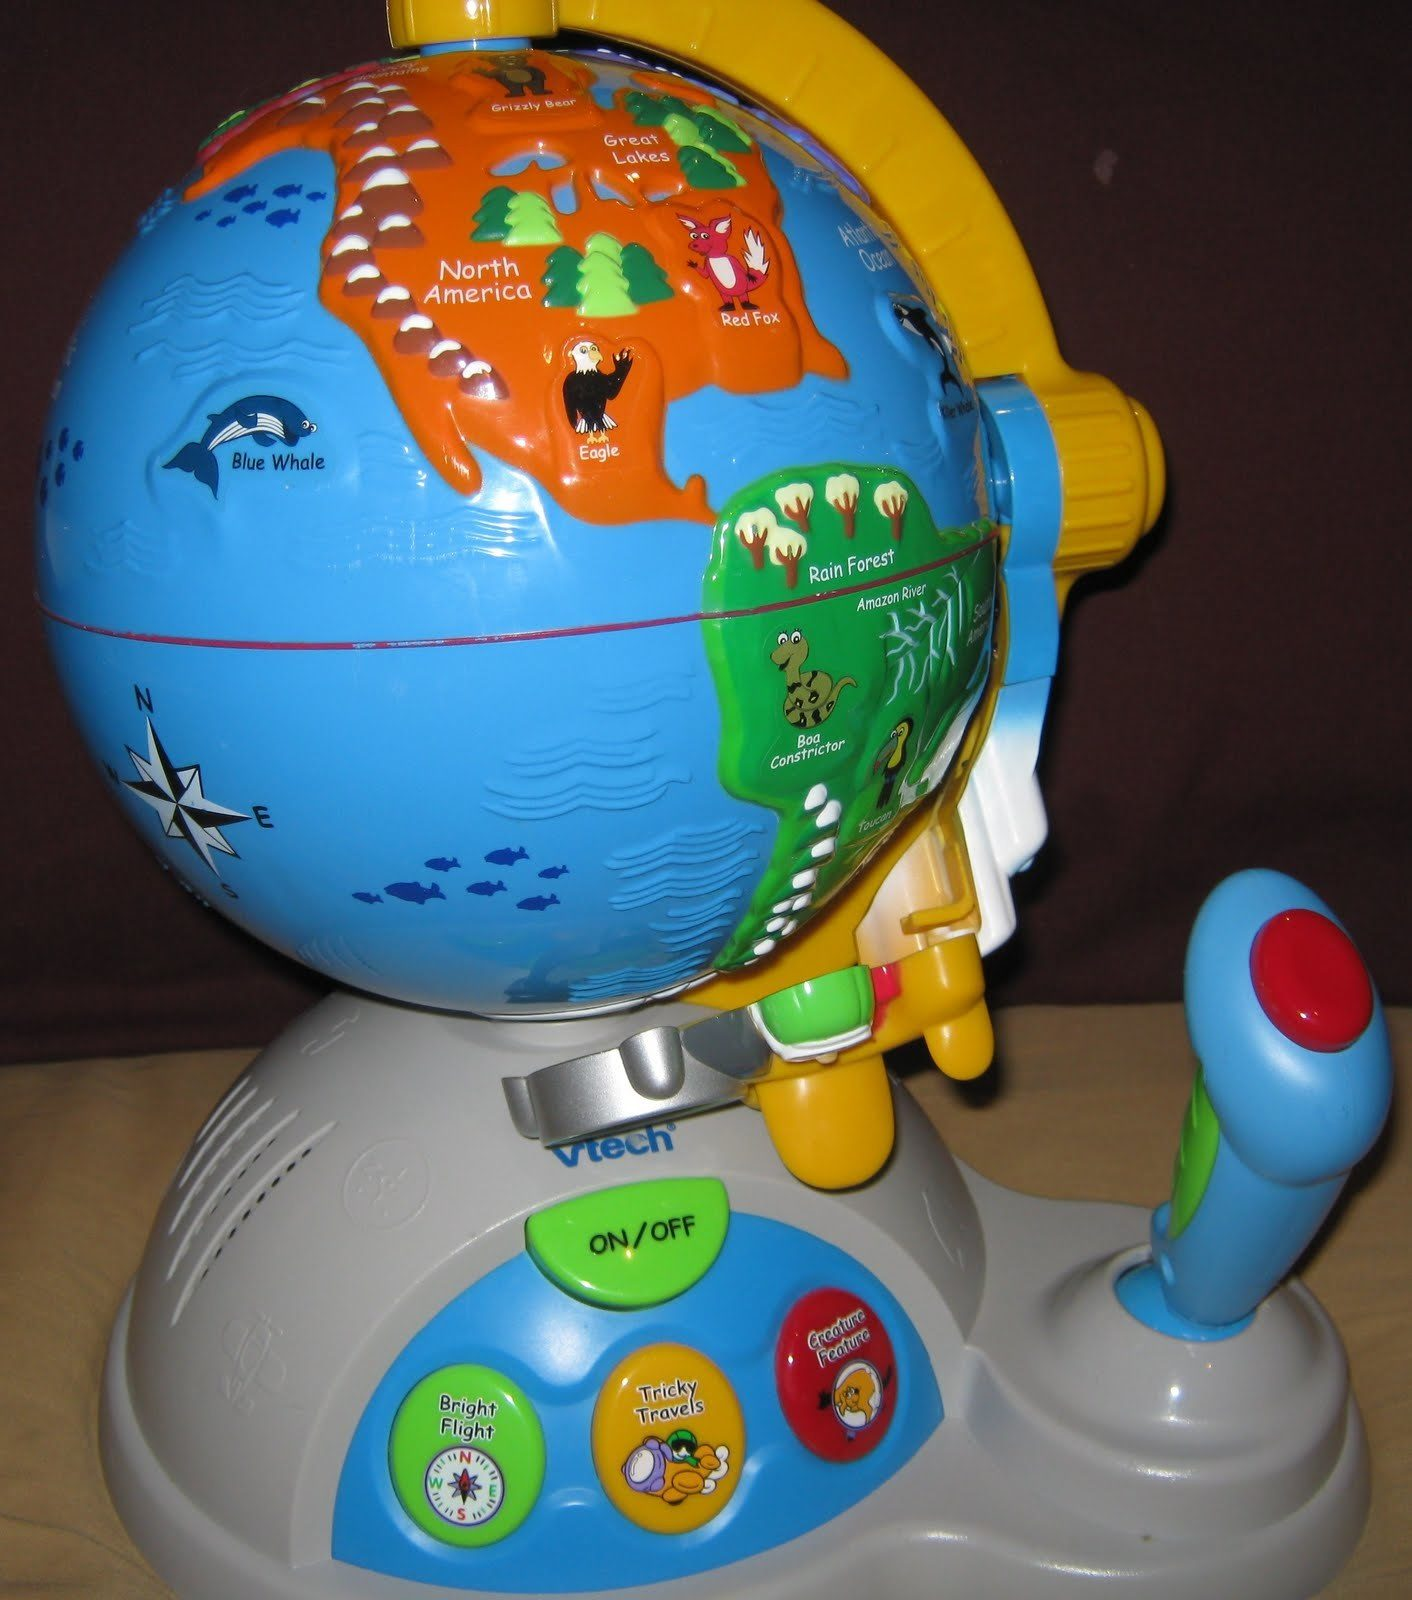 My Daughter Loves Her Vtech Fly And Learn Globe I Honestly Can Say, It's A  Very Good Learning Musical Toy For Toddlers It's A Bit Expensive, But Kids  Will